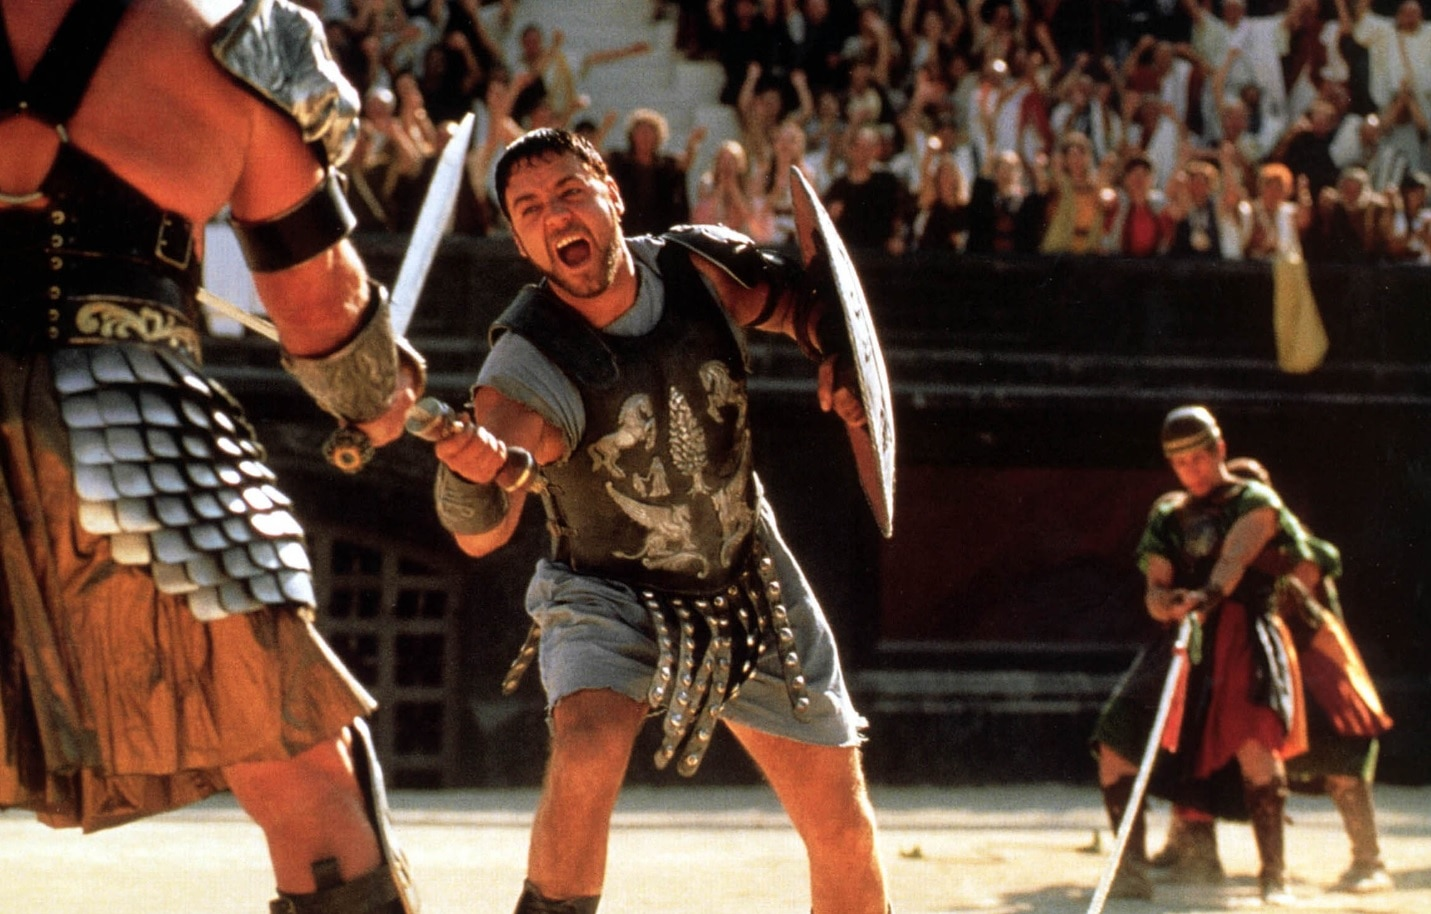 Russell Crowe's Gladiator armour exceeds expectations at auction